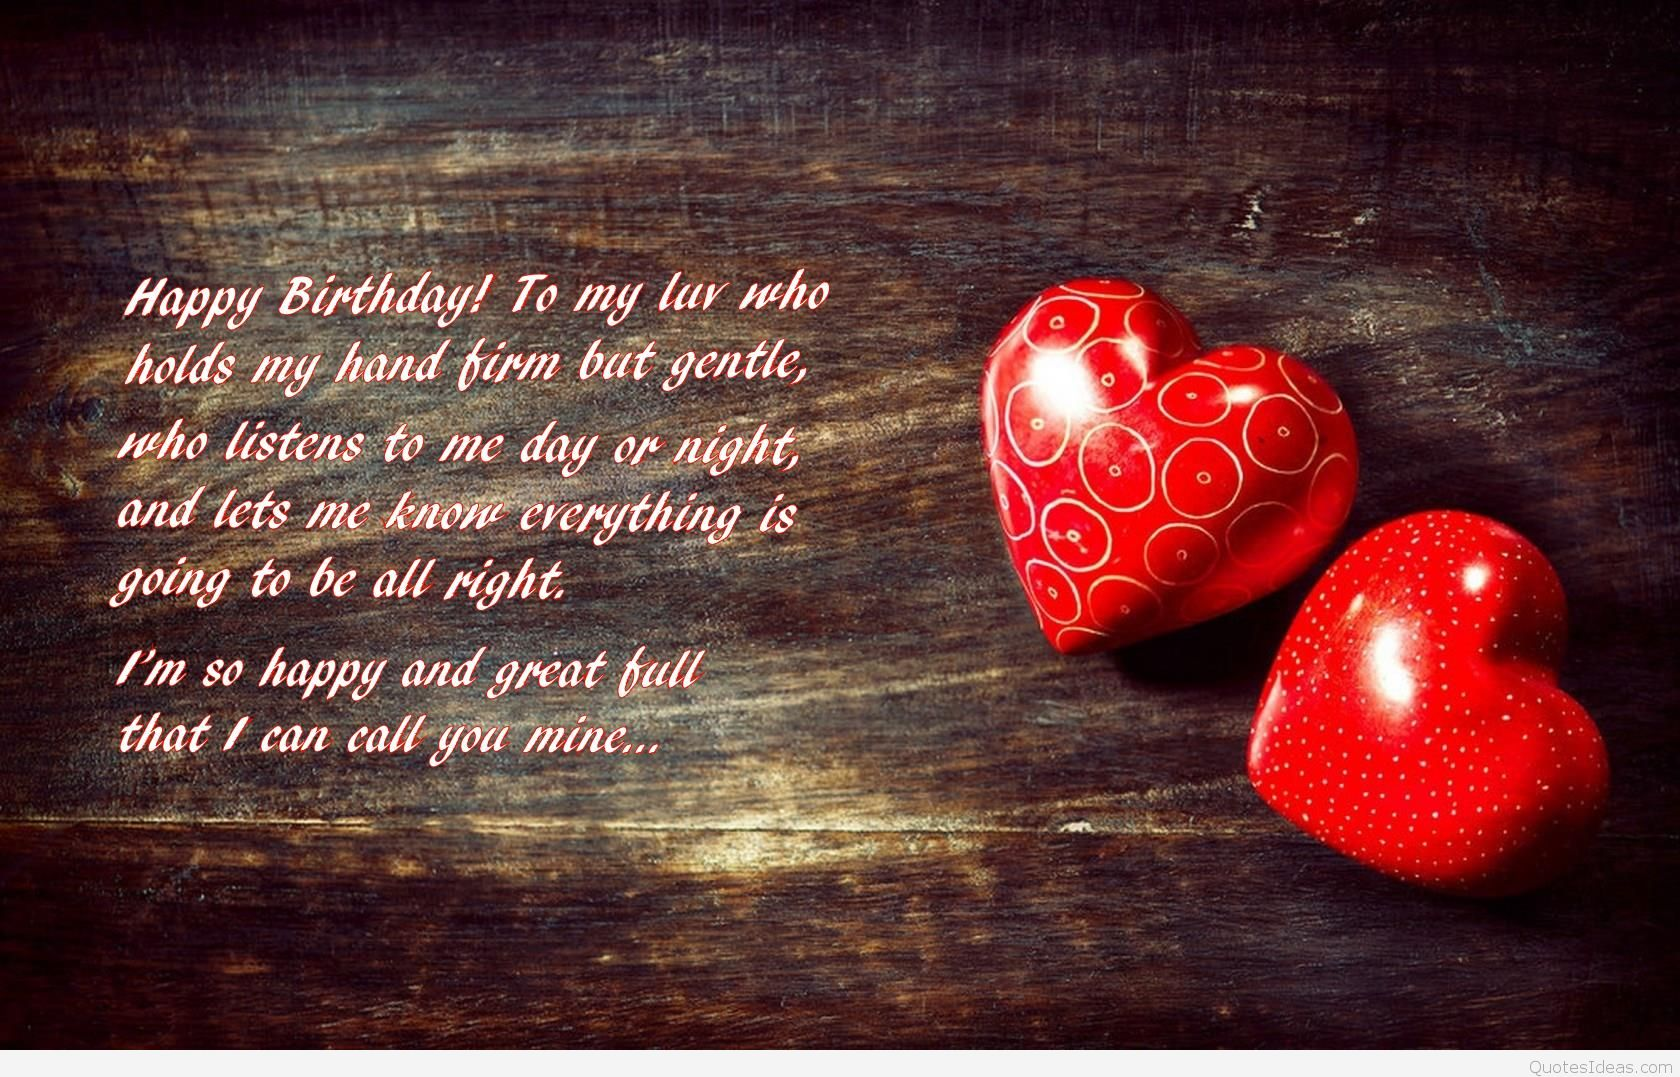 happy birthday to my love who holds my hand firm but gentle who listens to me day or hight, and lets me know everything is going to be all right. im so happy and great full that i can